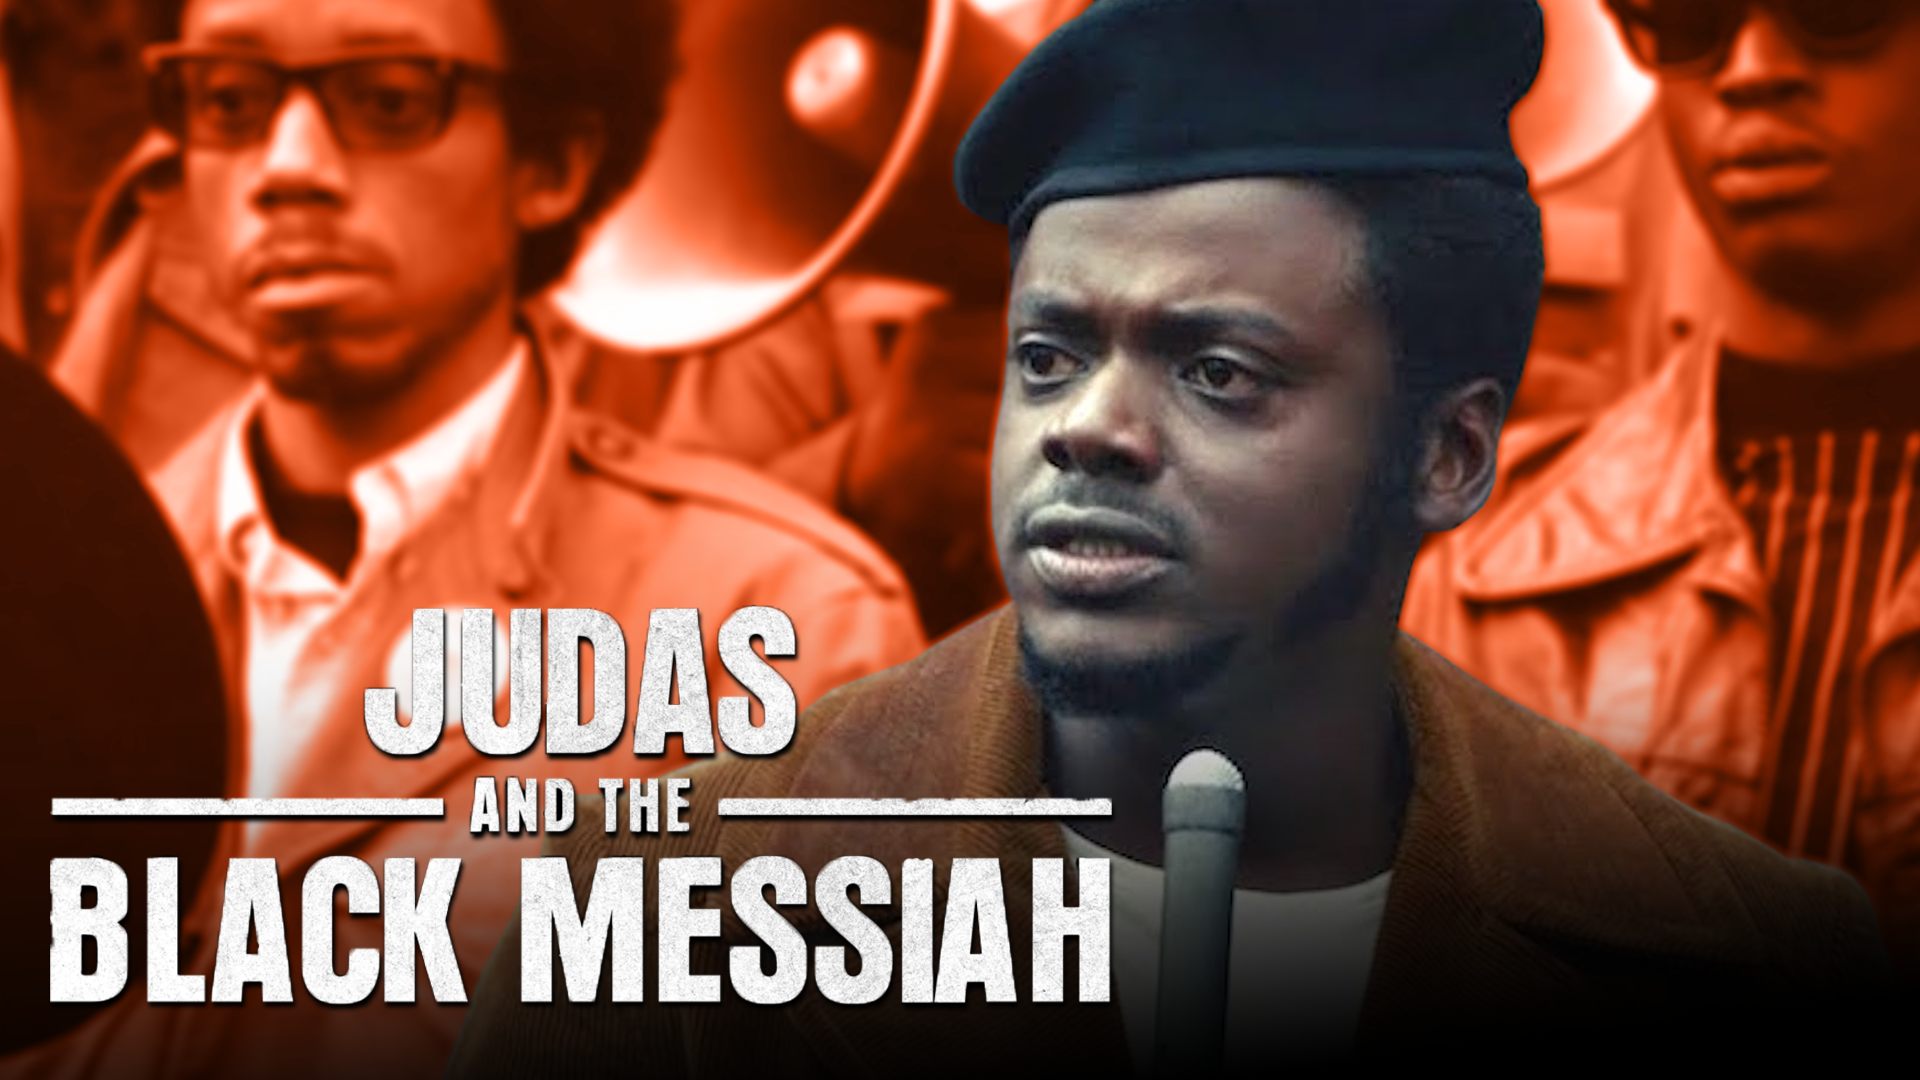 Judas and the Black Messiah retells history with powerful performances